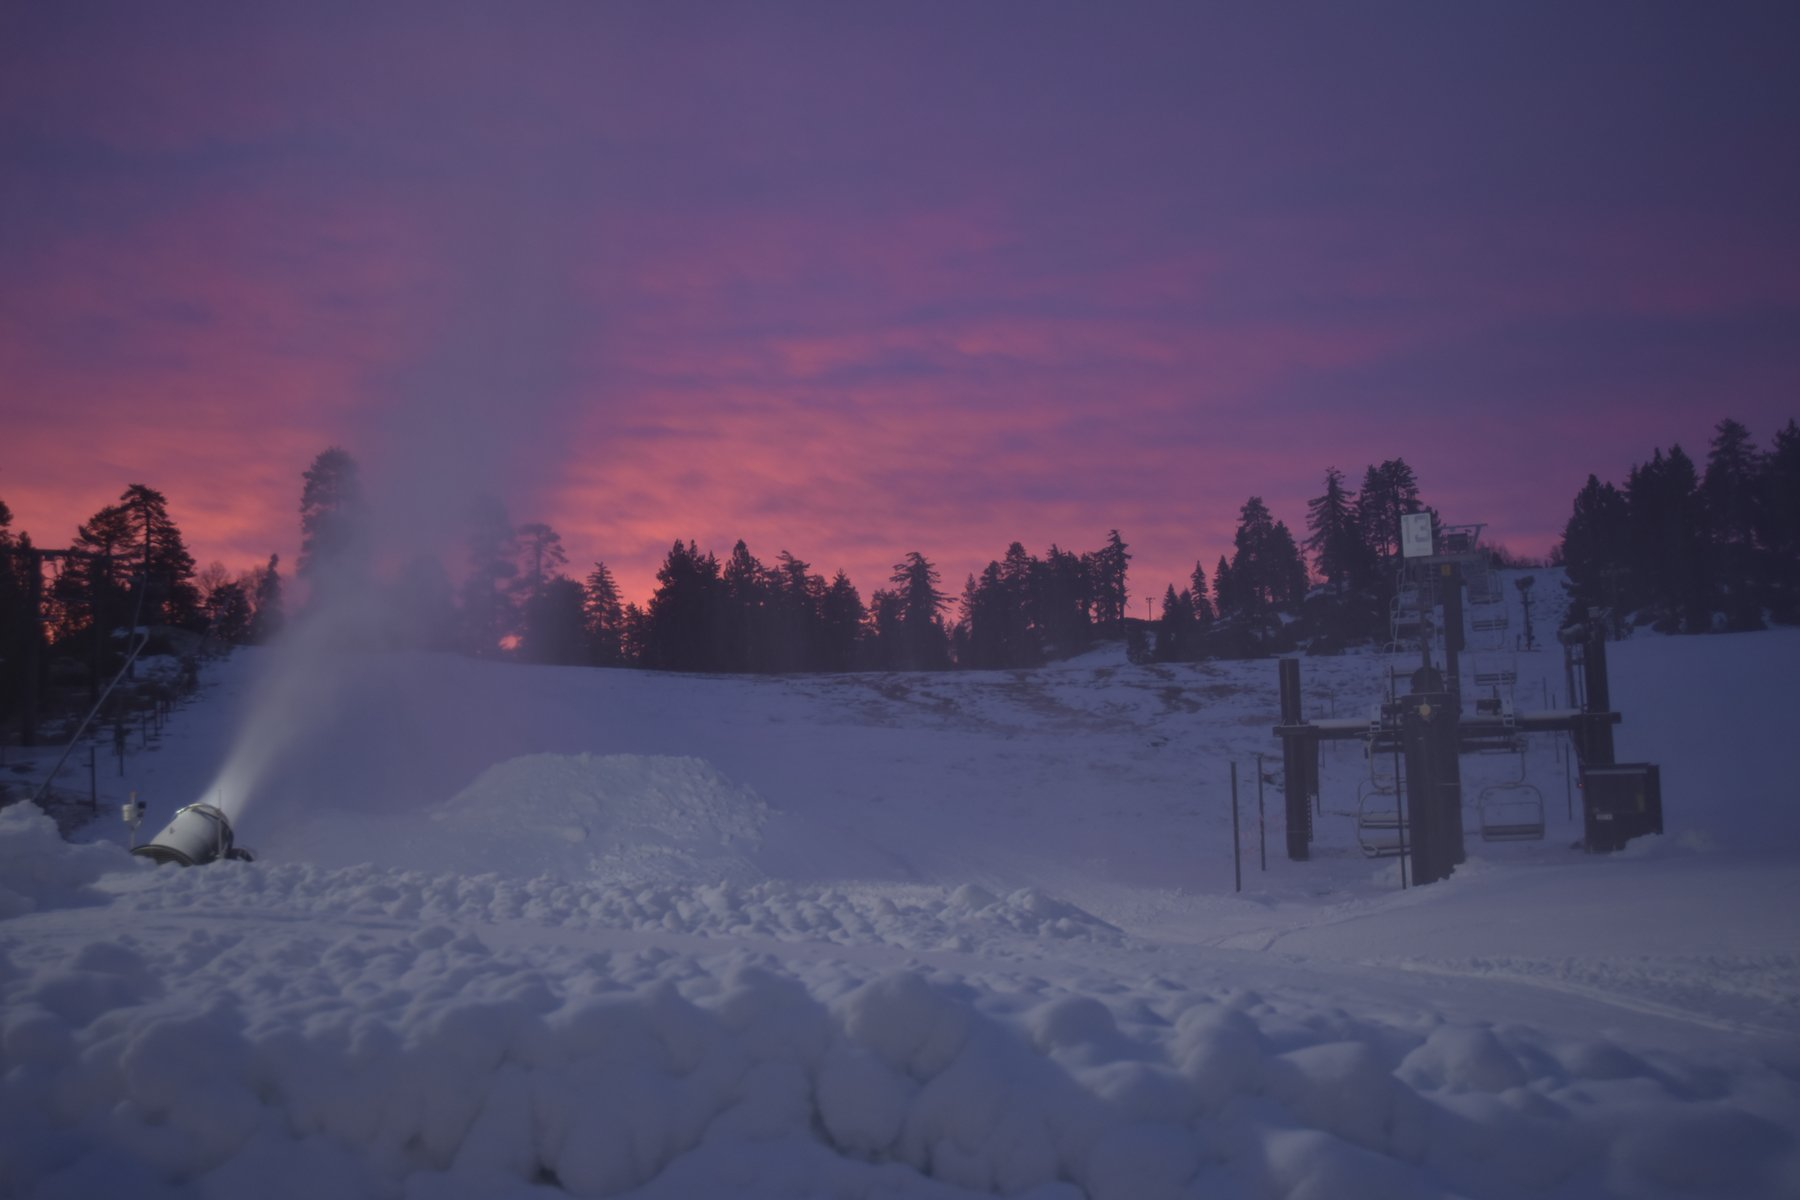 12-14-18: Early Morning Snowmaking